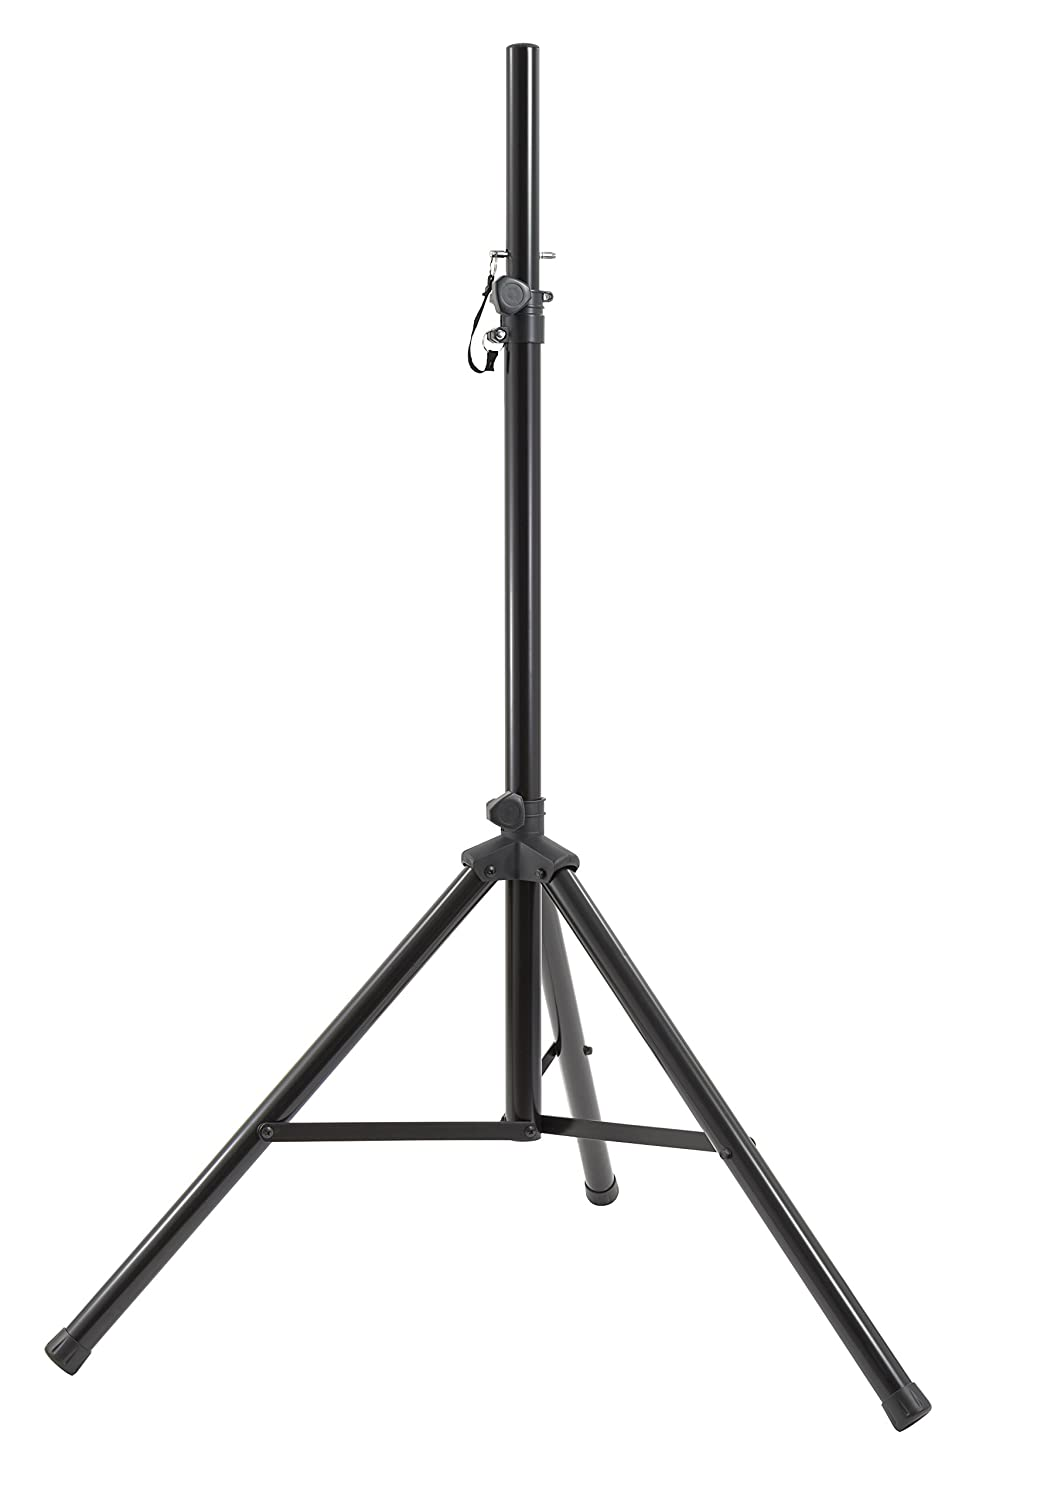 Gemini ST Series ST-PACK Professional Audio DJ Fold-Out Telescoping Tripod Black Anodized Steel Speaker Stands (Set of 2), Up To 80